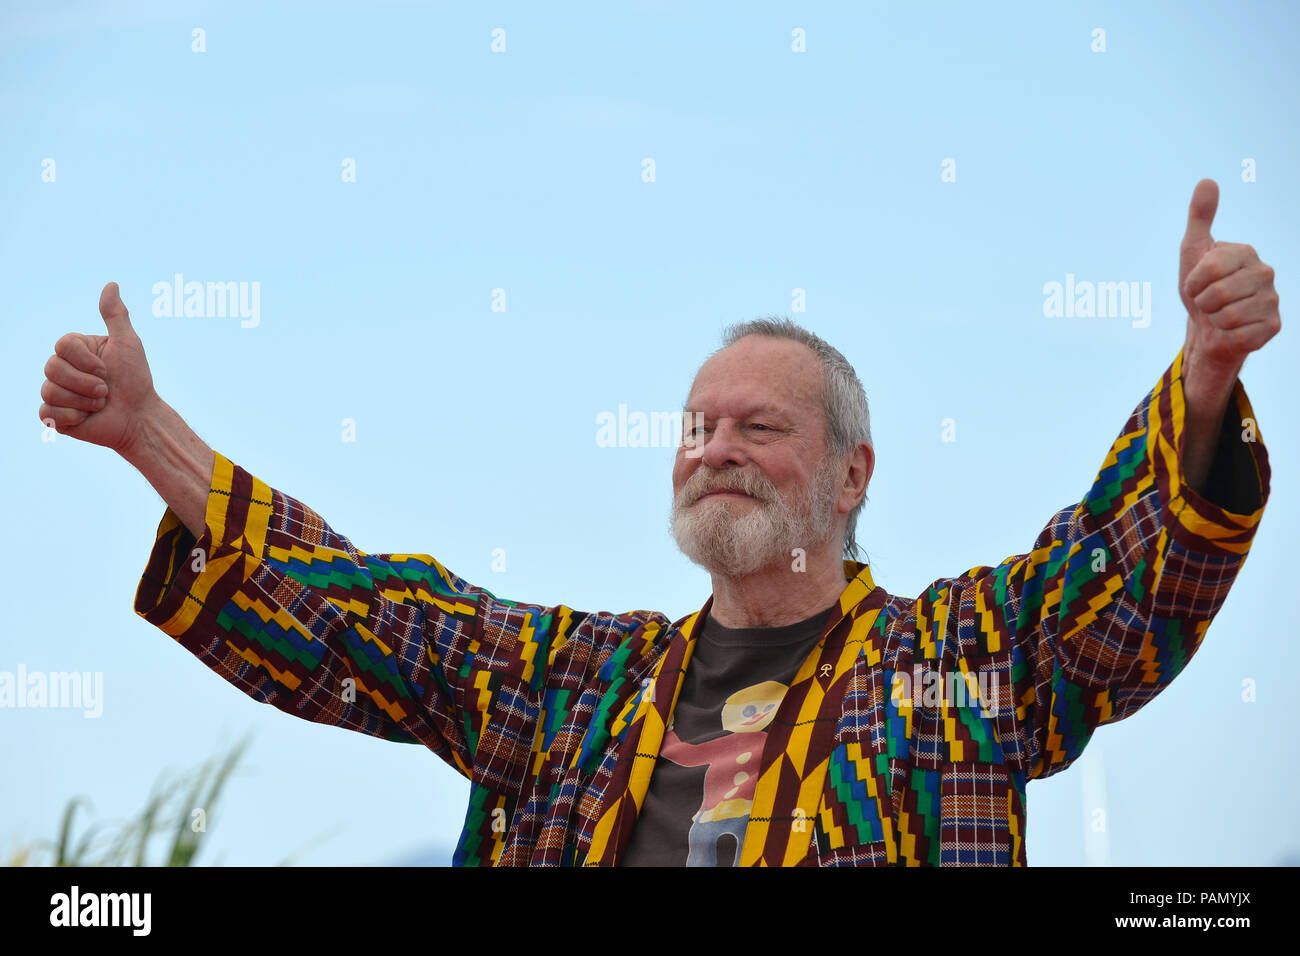 71st Cannes Film Festival: director Terry Gilliam here for the promotion of the film 'The Man Who Killed Don Quixote - L'homme qui tua Don Quichotte', - Stock Image